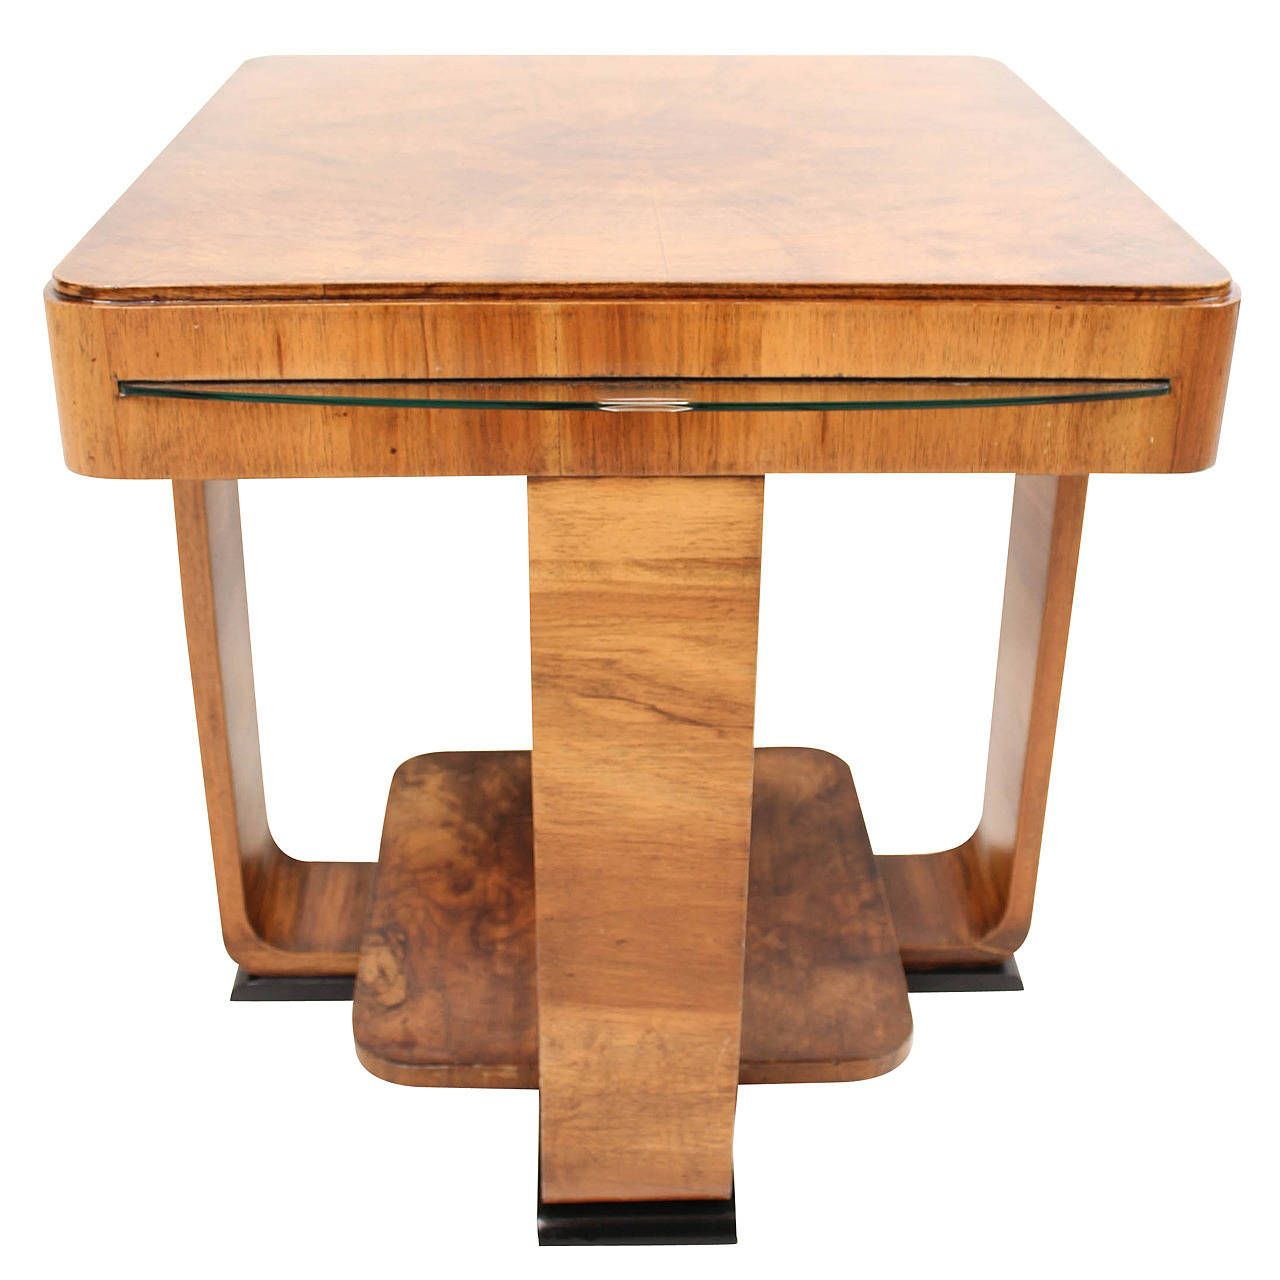 Rare French Art Deco Walnut Coffee Table